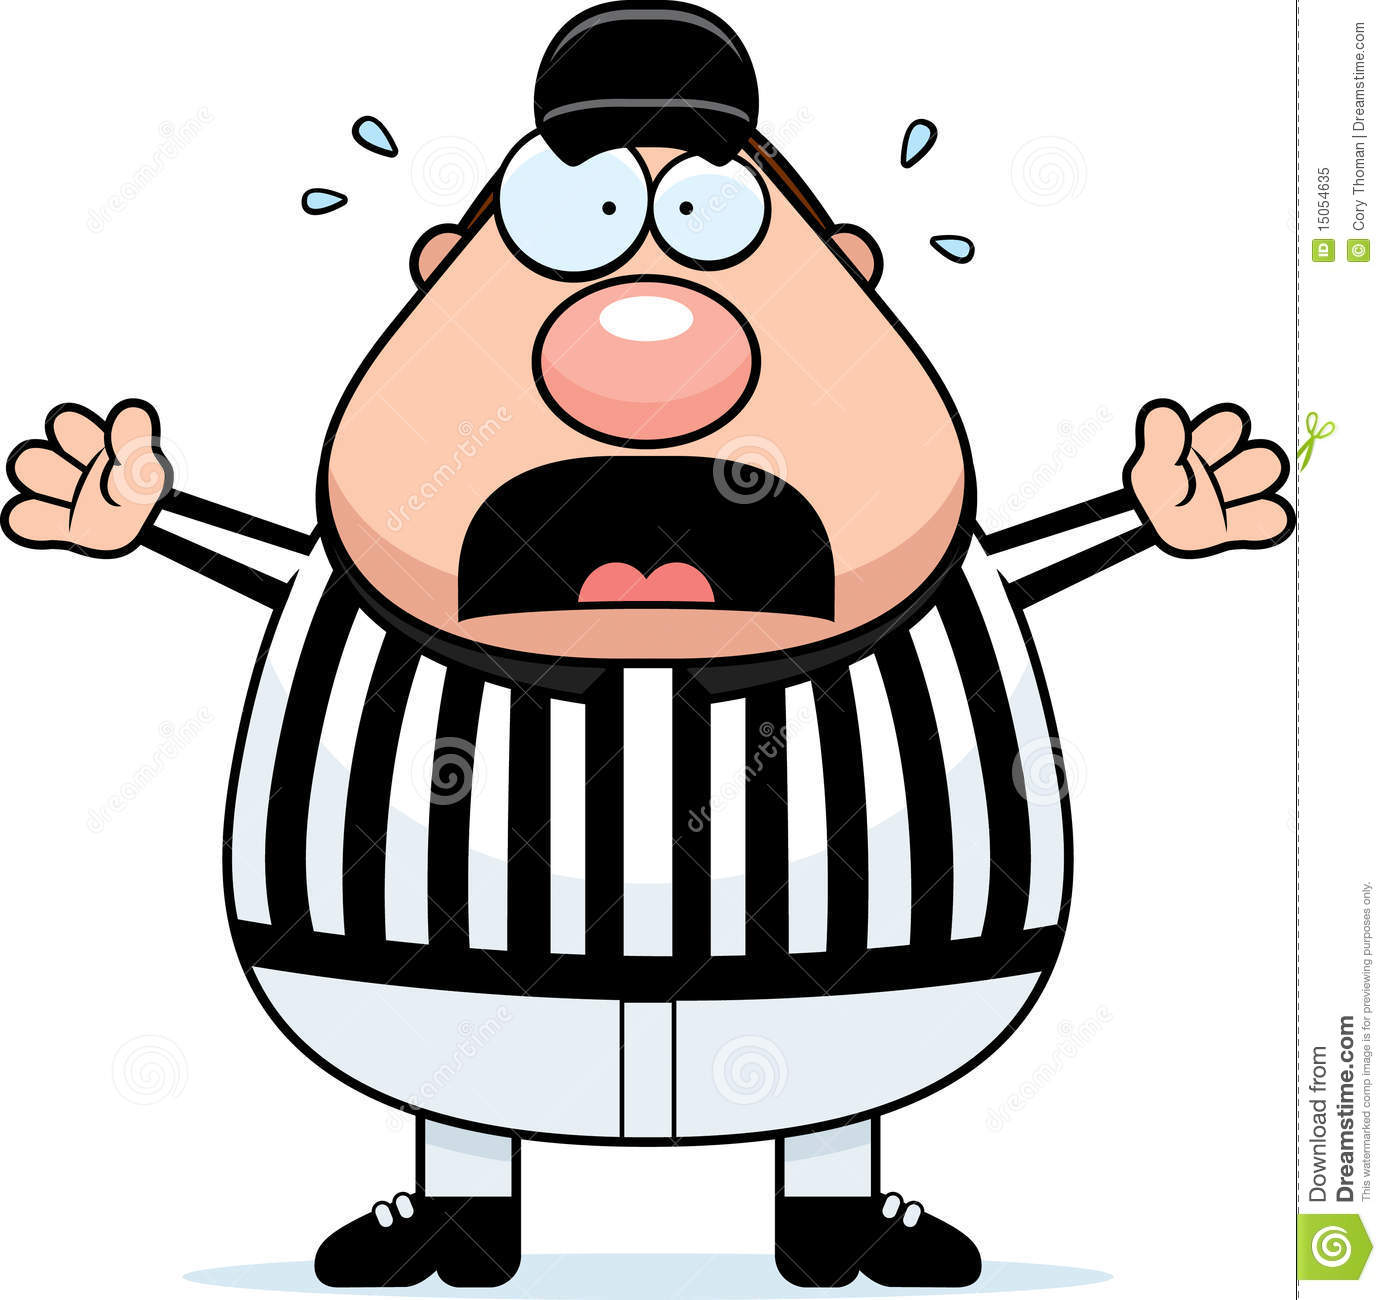 Referee Stock Illustrations.